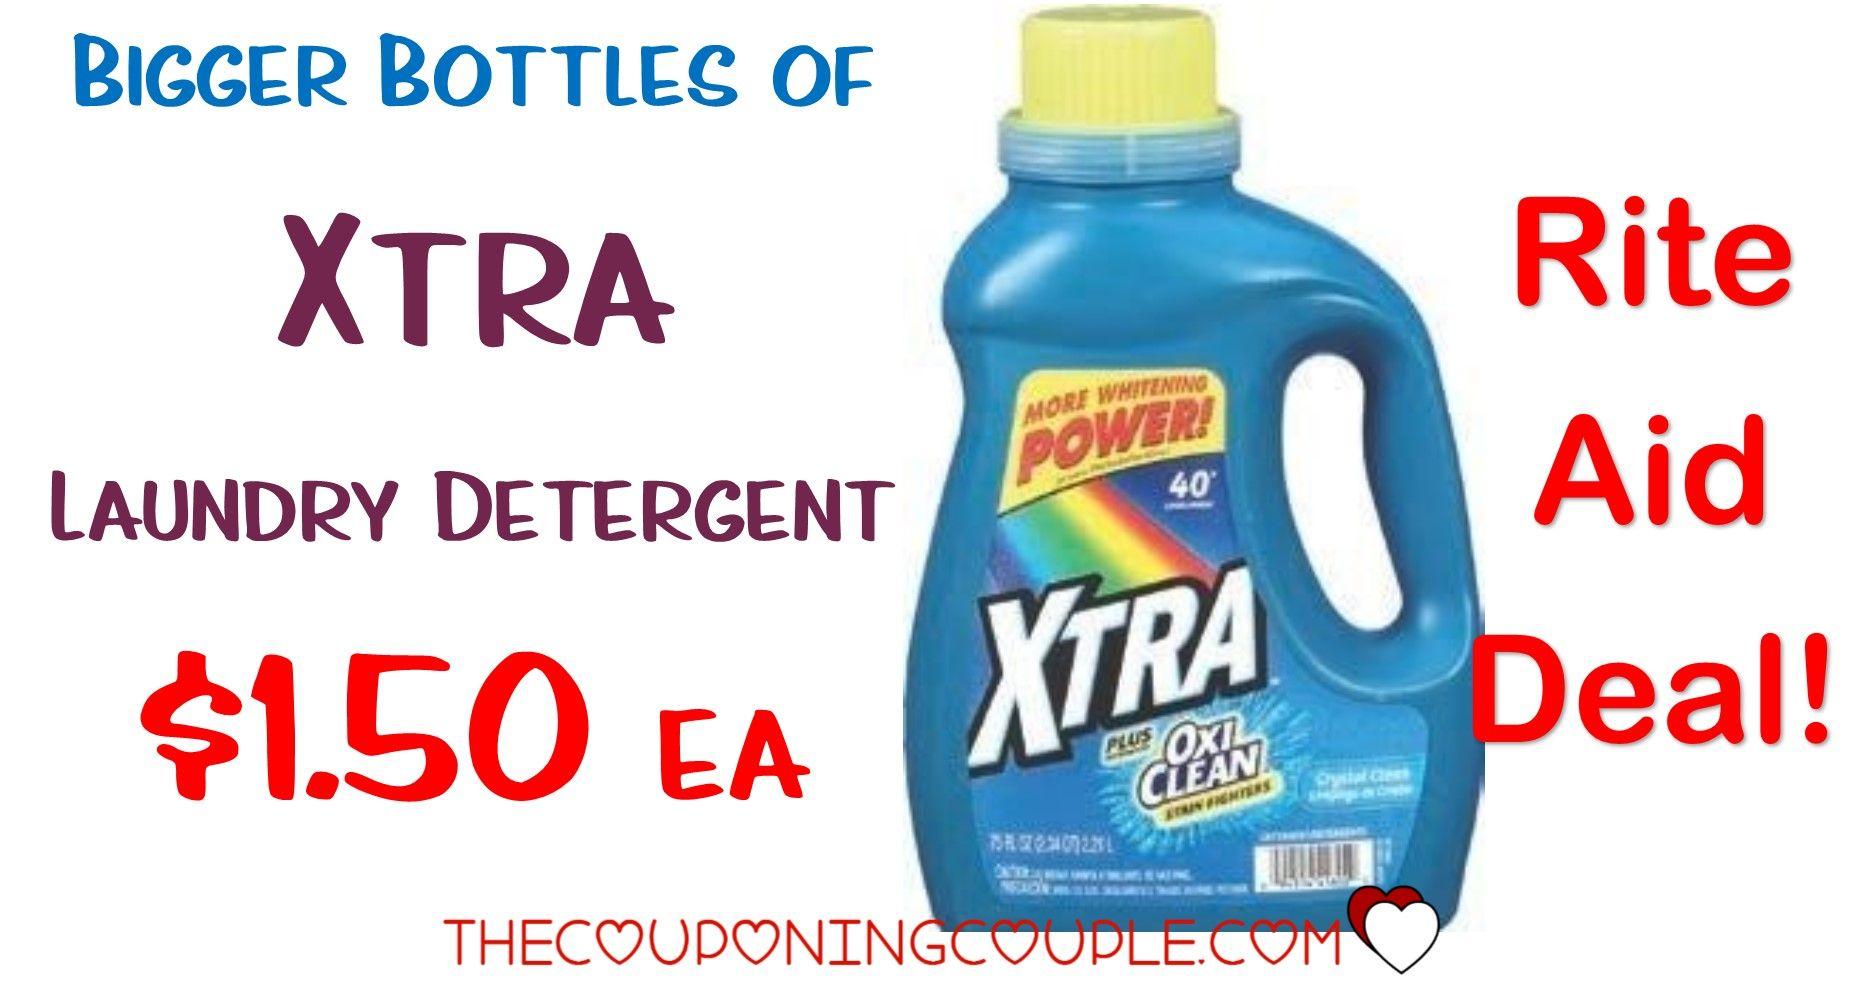 Bigger Bottles Of Xtra Laundry Detergent Deal At Rite Aid Only